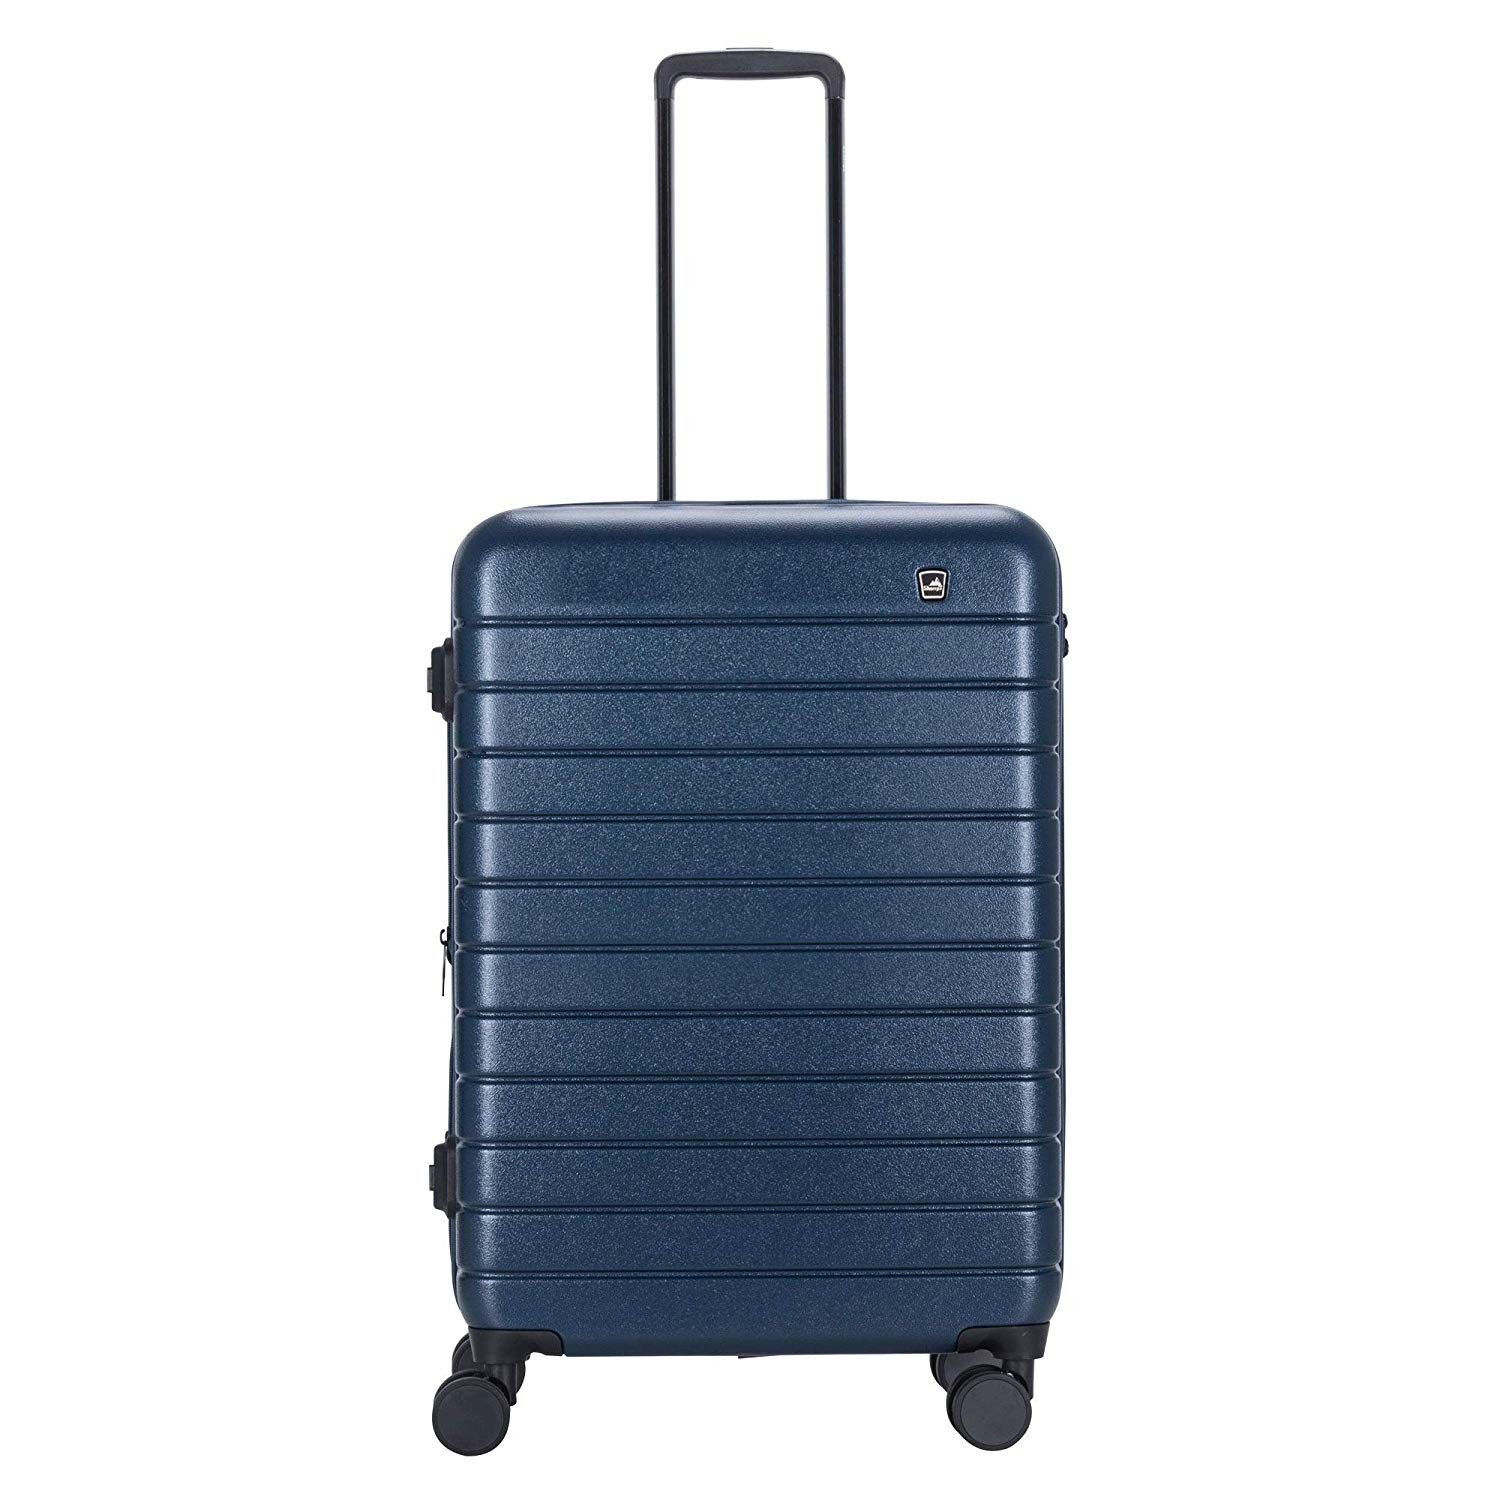 Sherrpa Destiny Luggage Hardside Lightweight Expandable Suitcase Spinner 25in